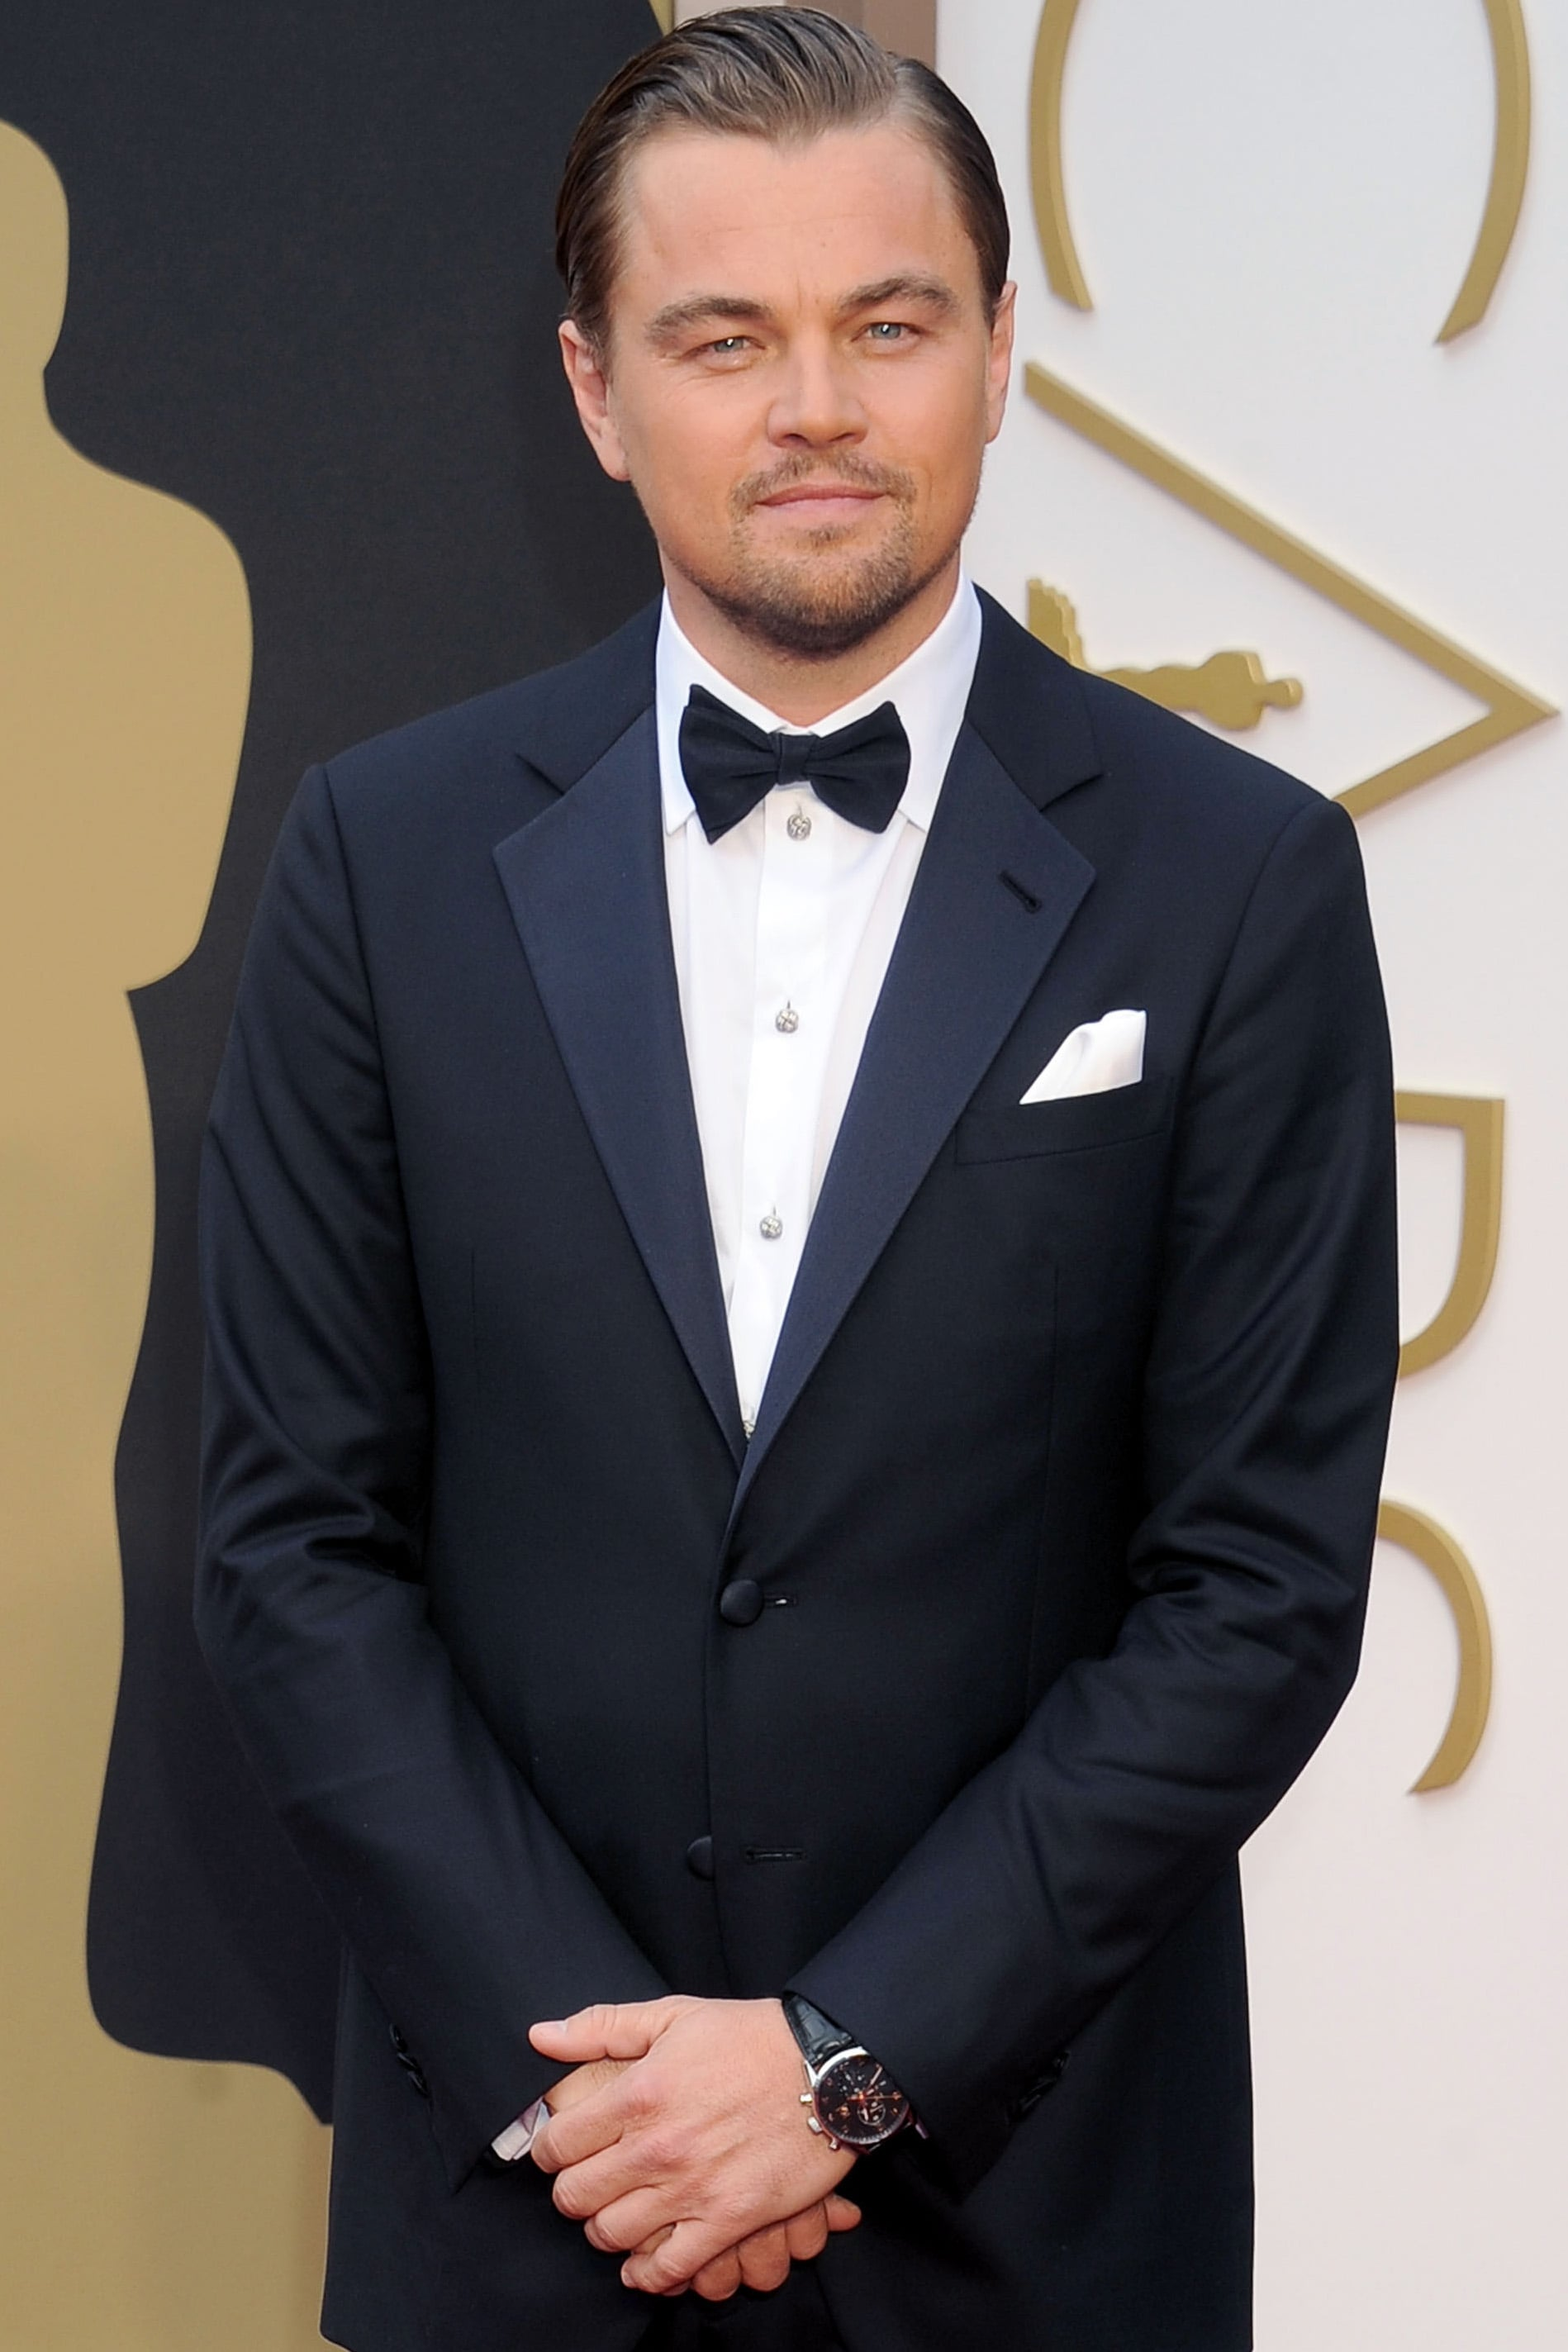 Leonardo DiCaprio will star in The Revenant, about a man mauled by a bear and left for dead by robbers. He'll also produce the film.